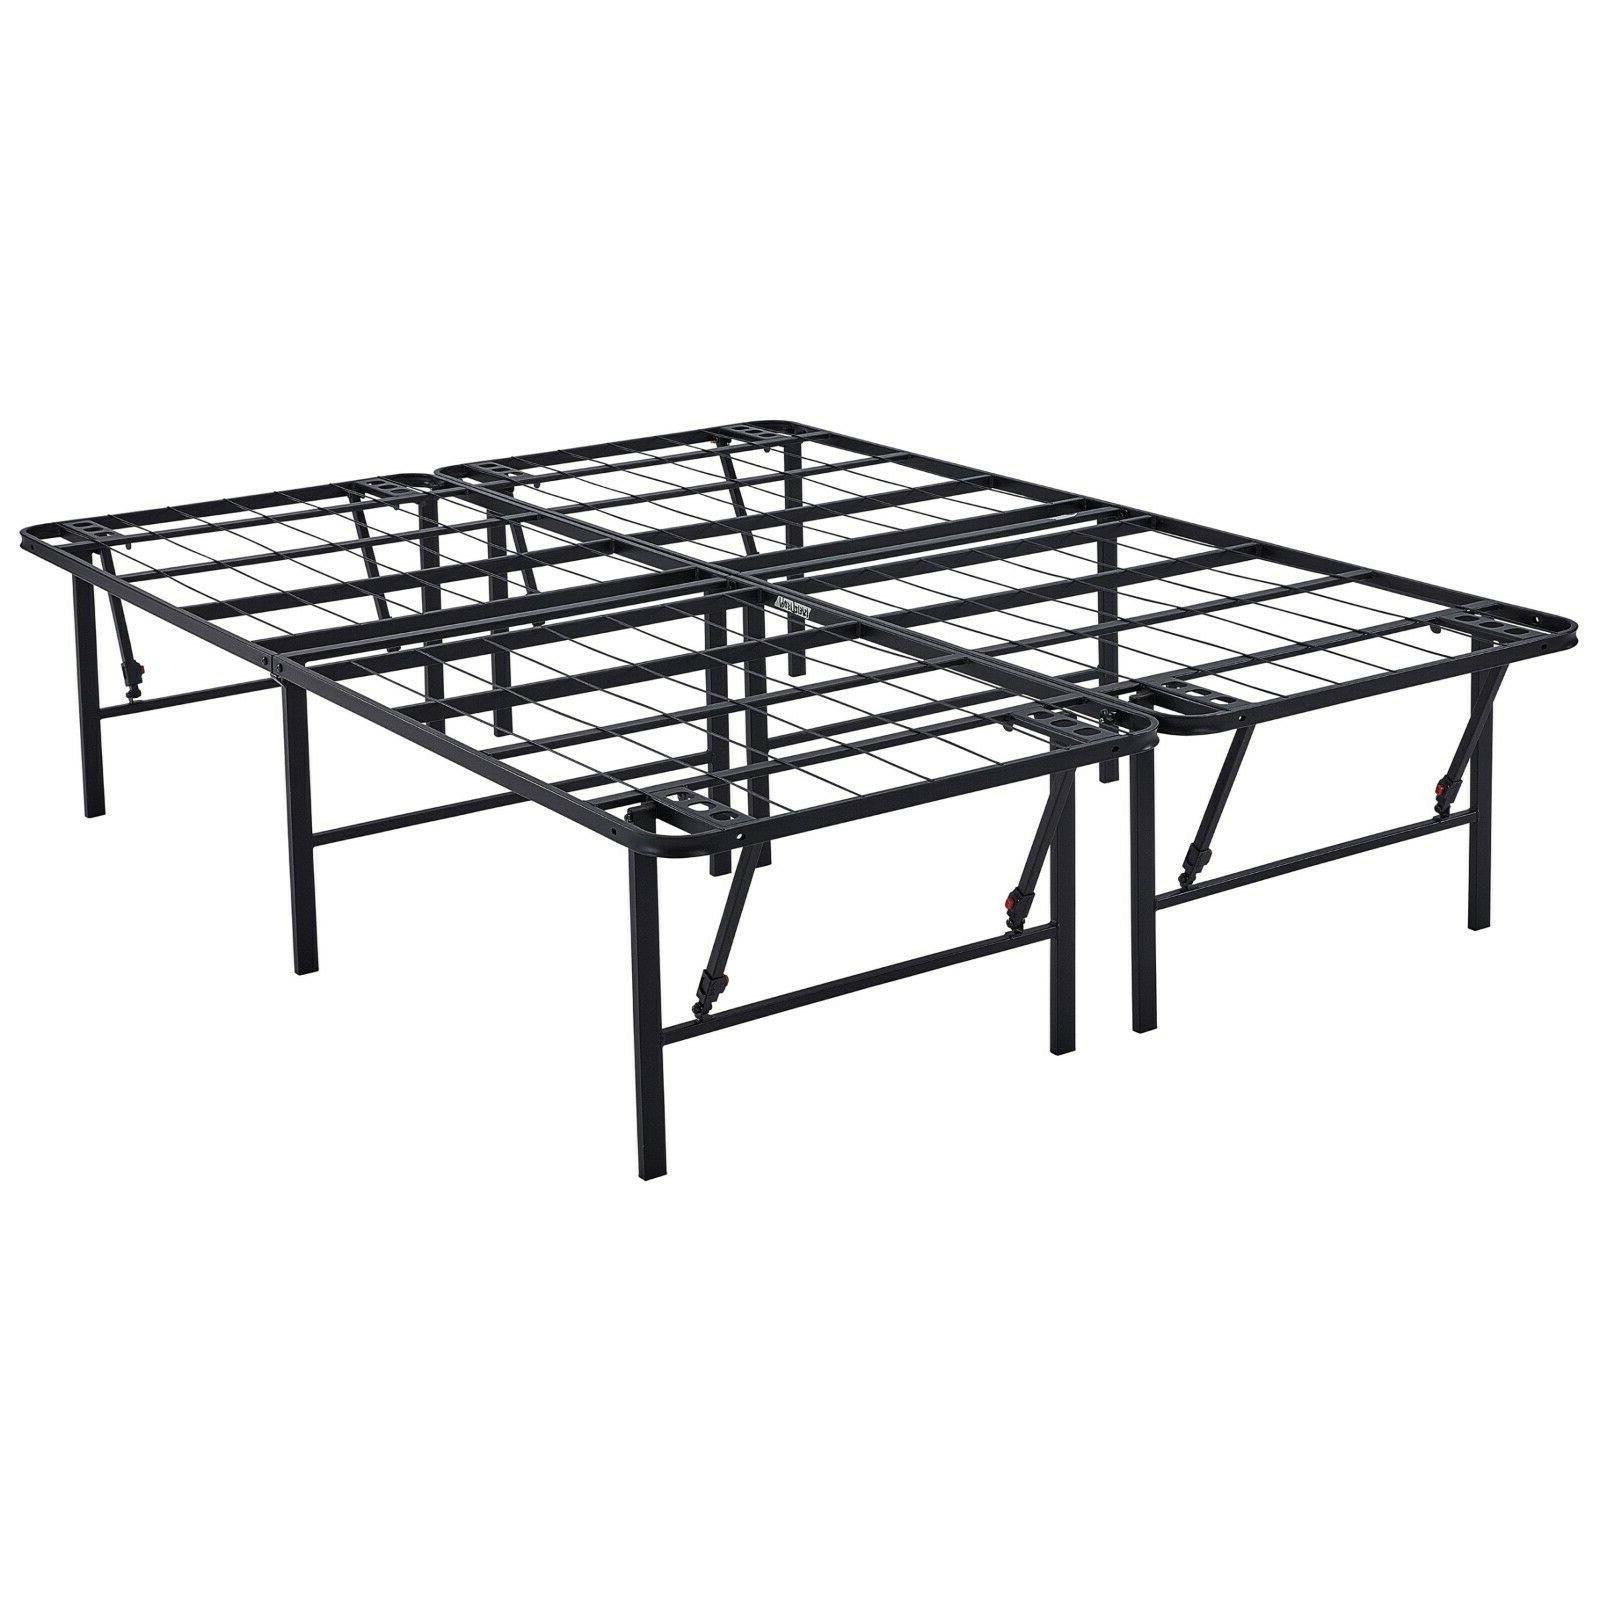 18 Frame Profile Mattress Frame